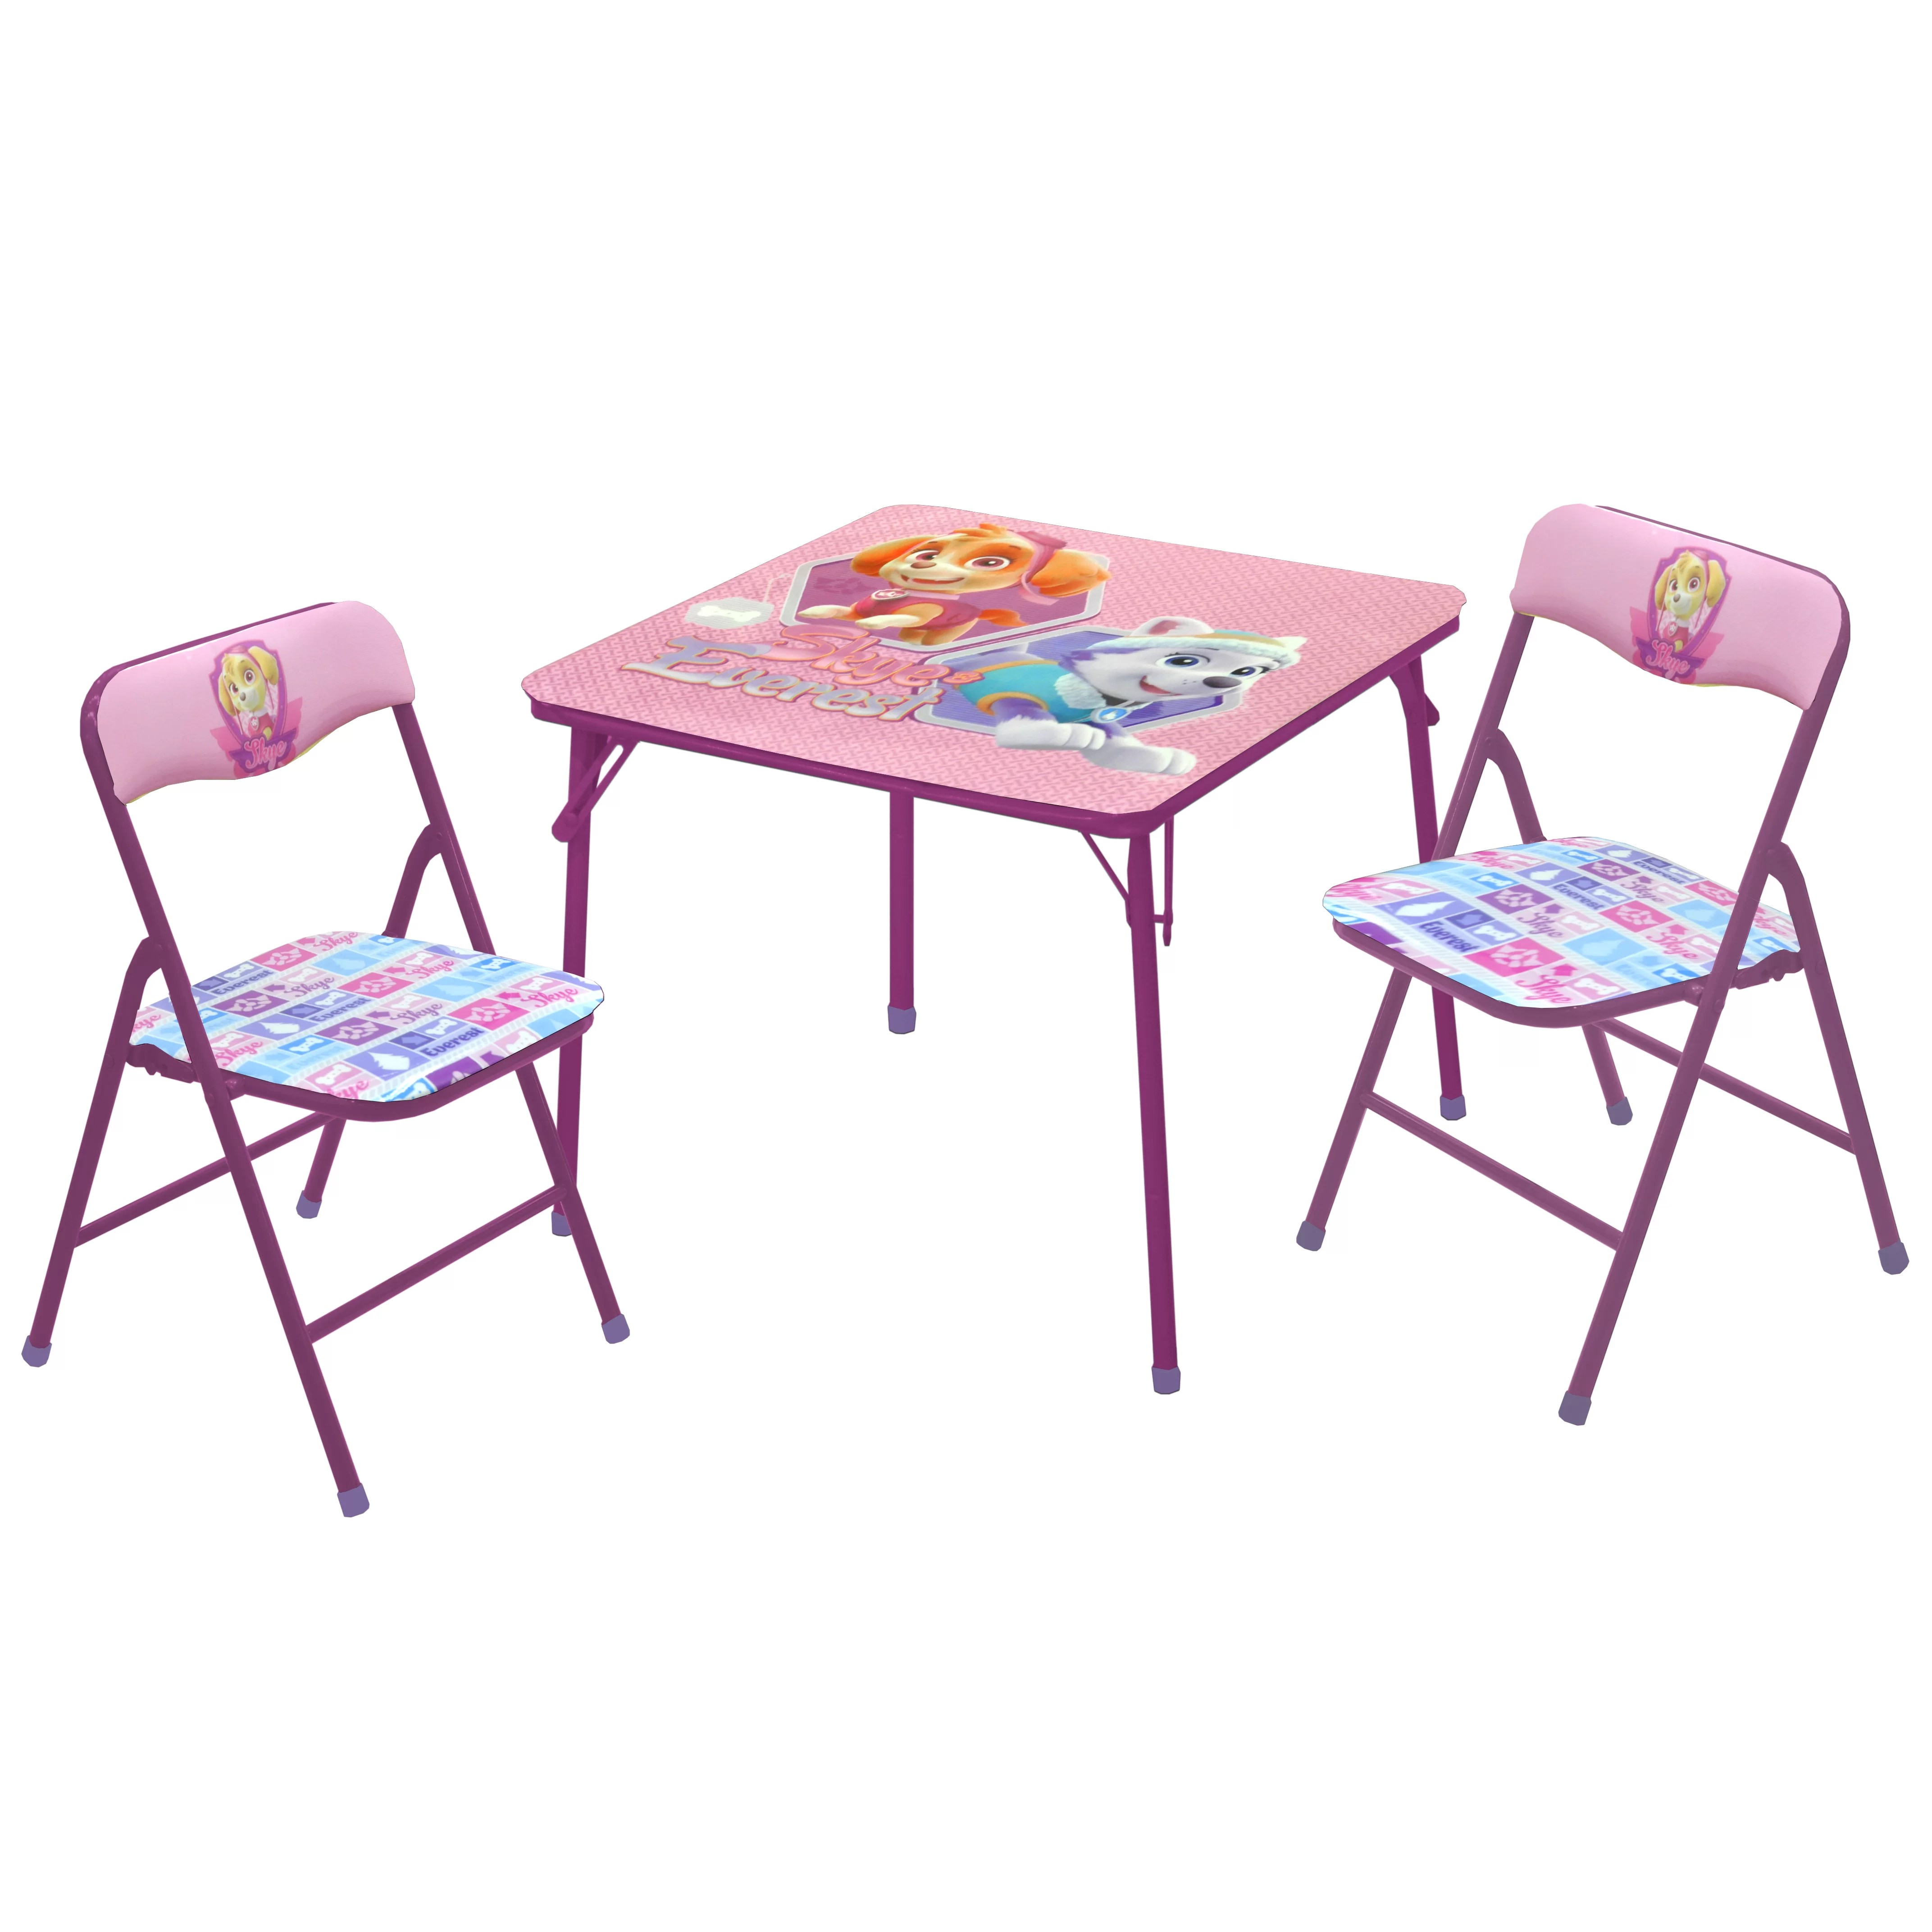 safety 1st 5 piece childrens table and chair set rubber feet caps idea nuova nickelodeon paw patrol skye everest kid 39s